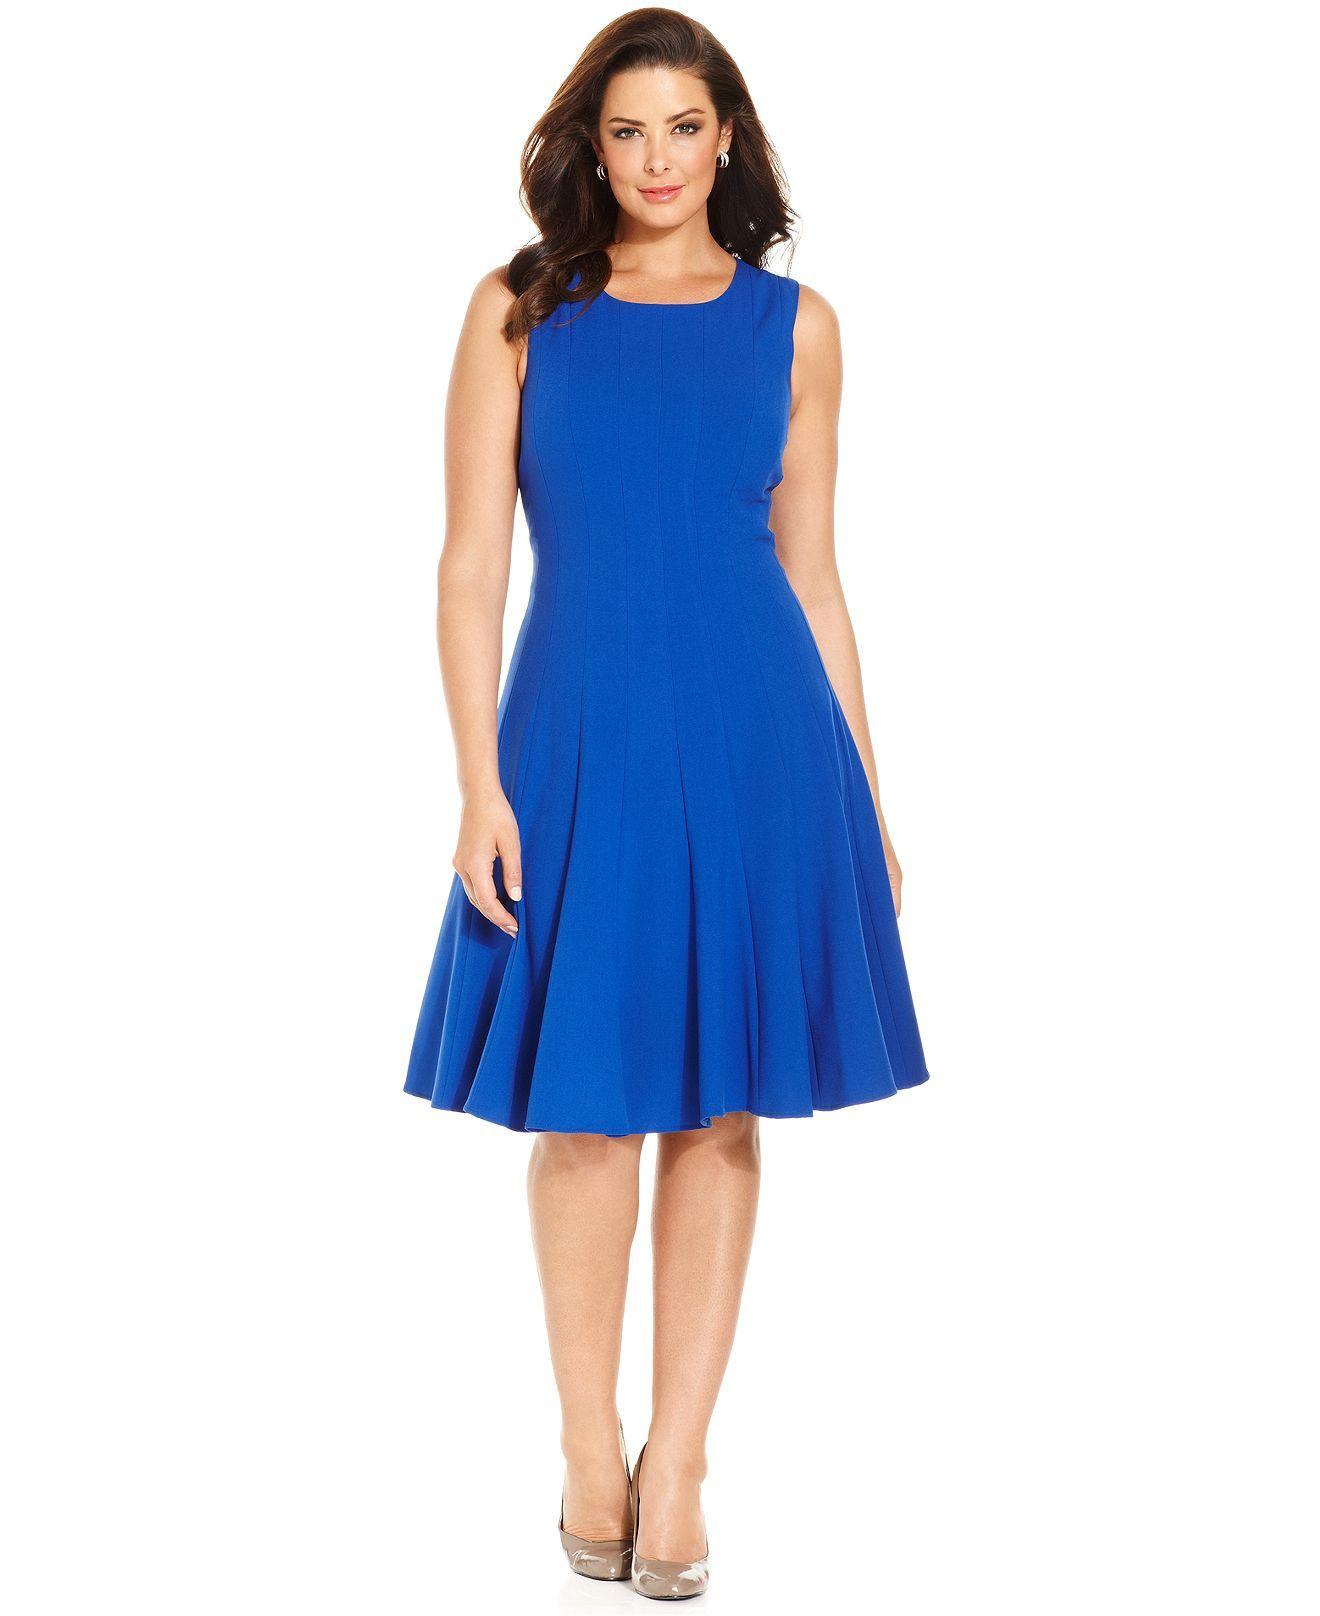 126418a63e3f Calvin Klein Plus Size Dress